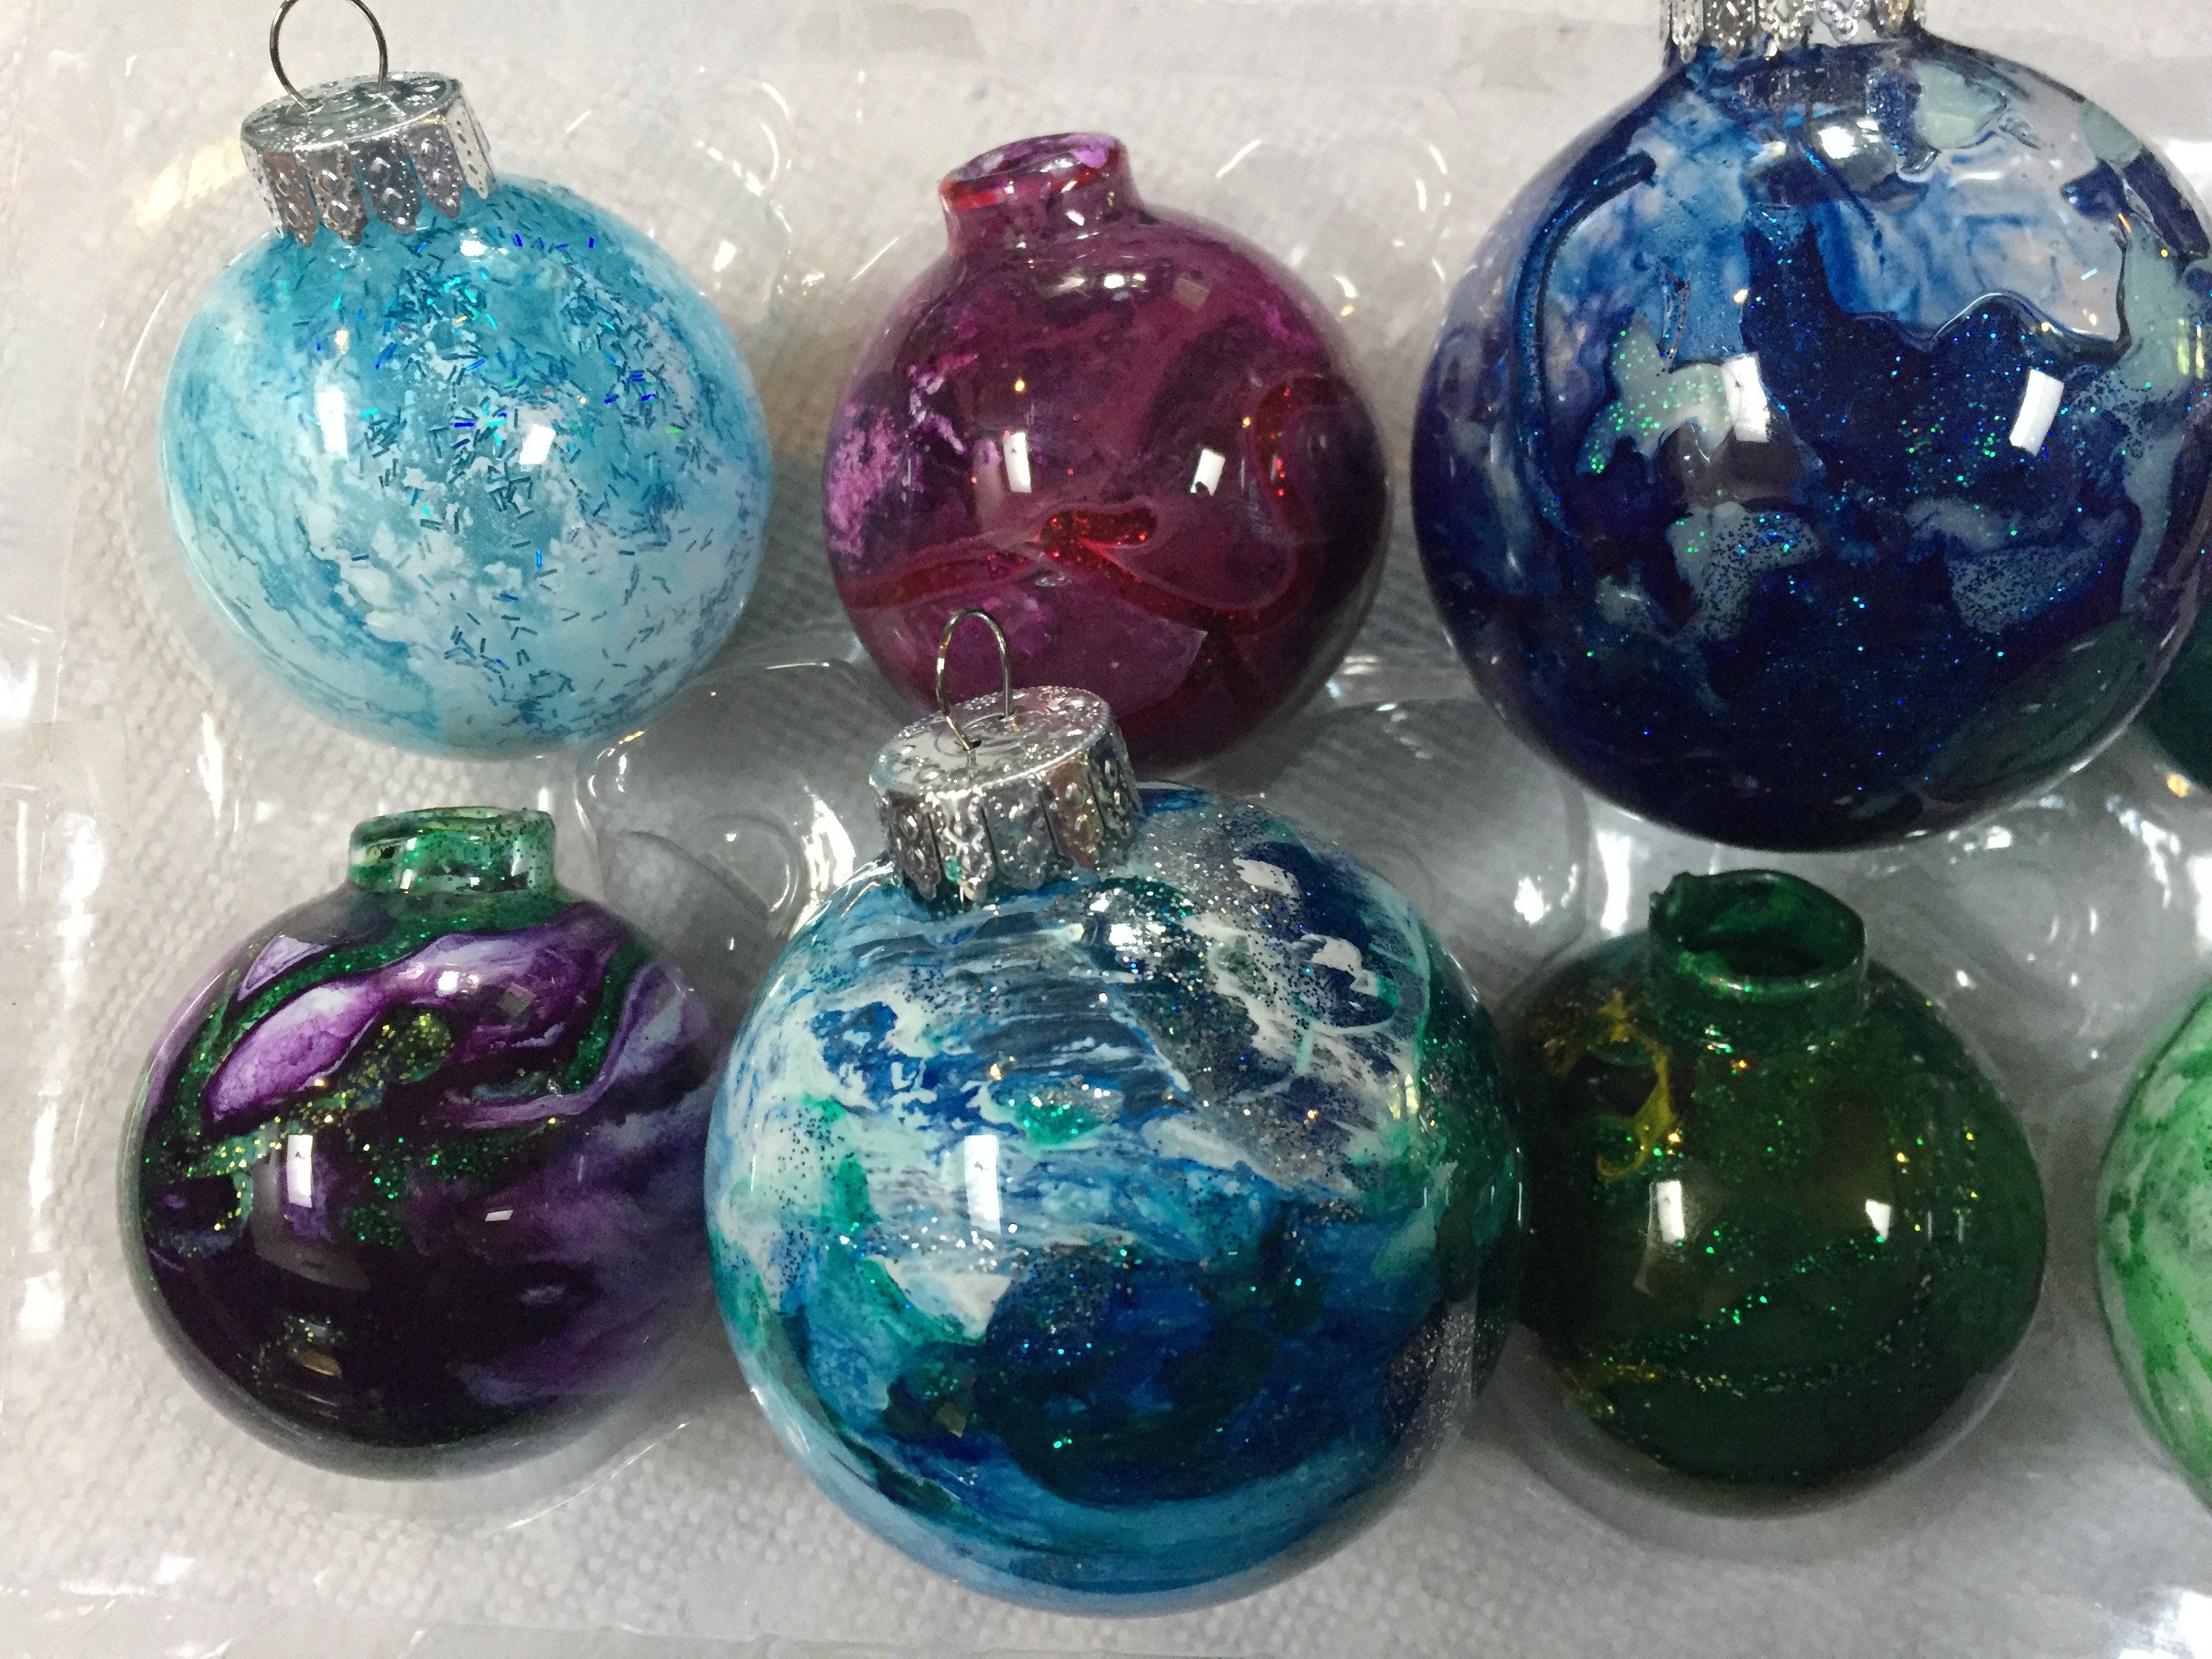 Glass Ornaments hand painted by Lahle Wolfe, blue, purple. green tones